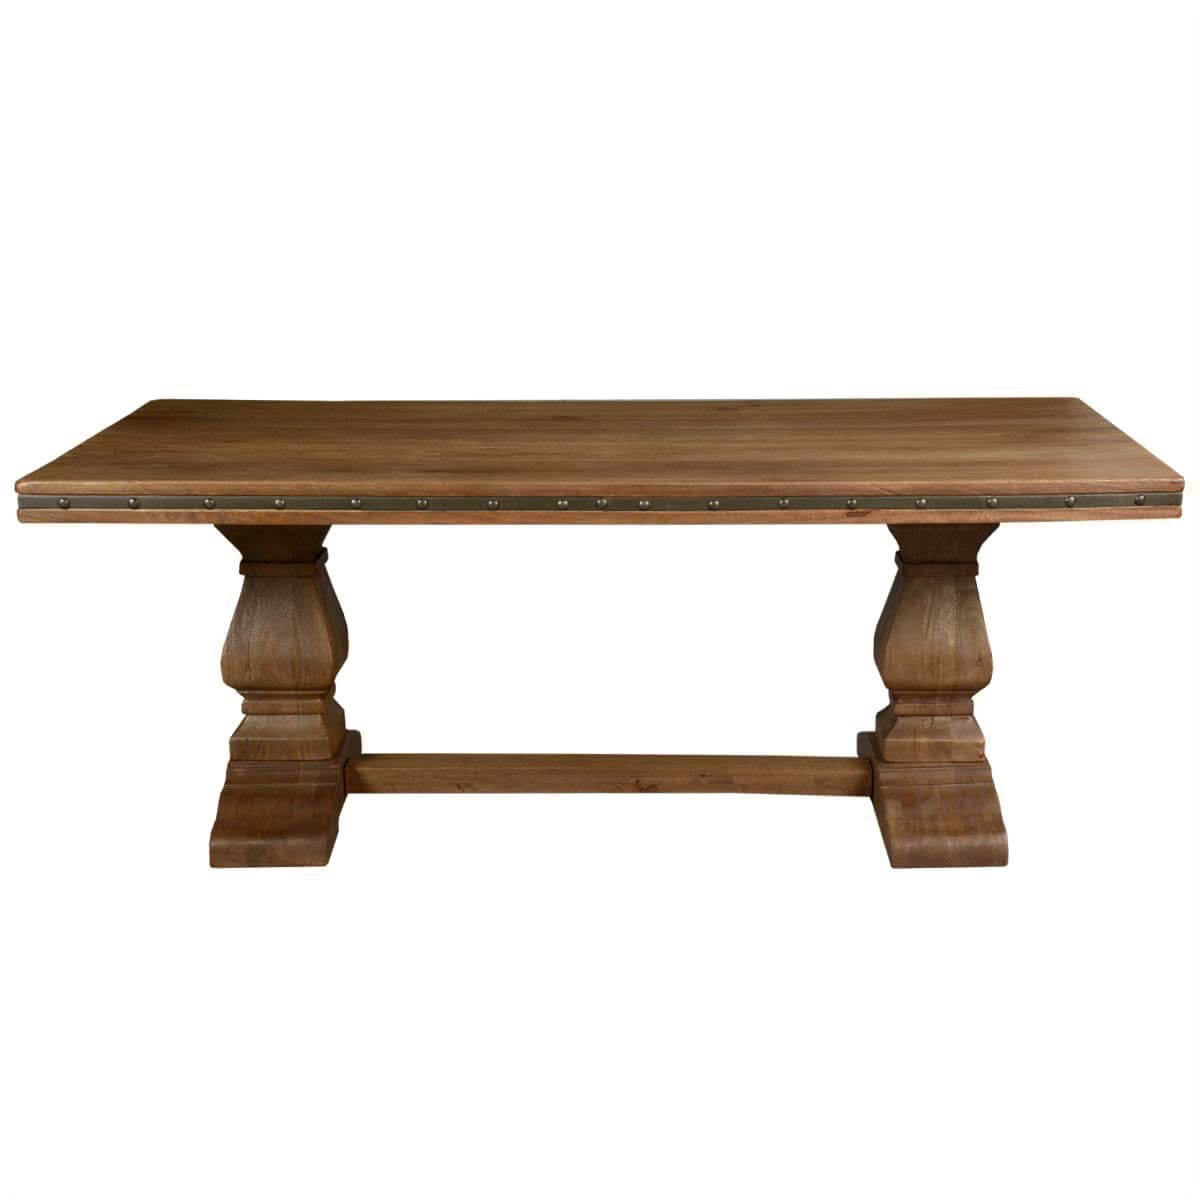 Tables rustic solid wood trestle pedestal base harvest dining table - Rustic Solid Wood Trestle Pedestal Base Harvest Dining Tablesolid Wood Trestle Pedestal Base Harvest Dining Table